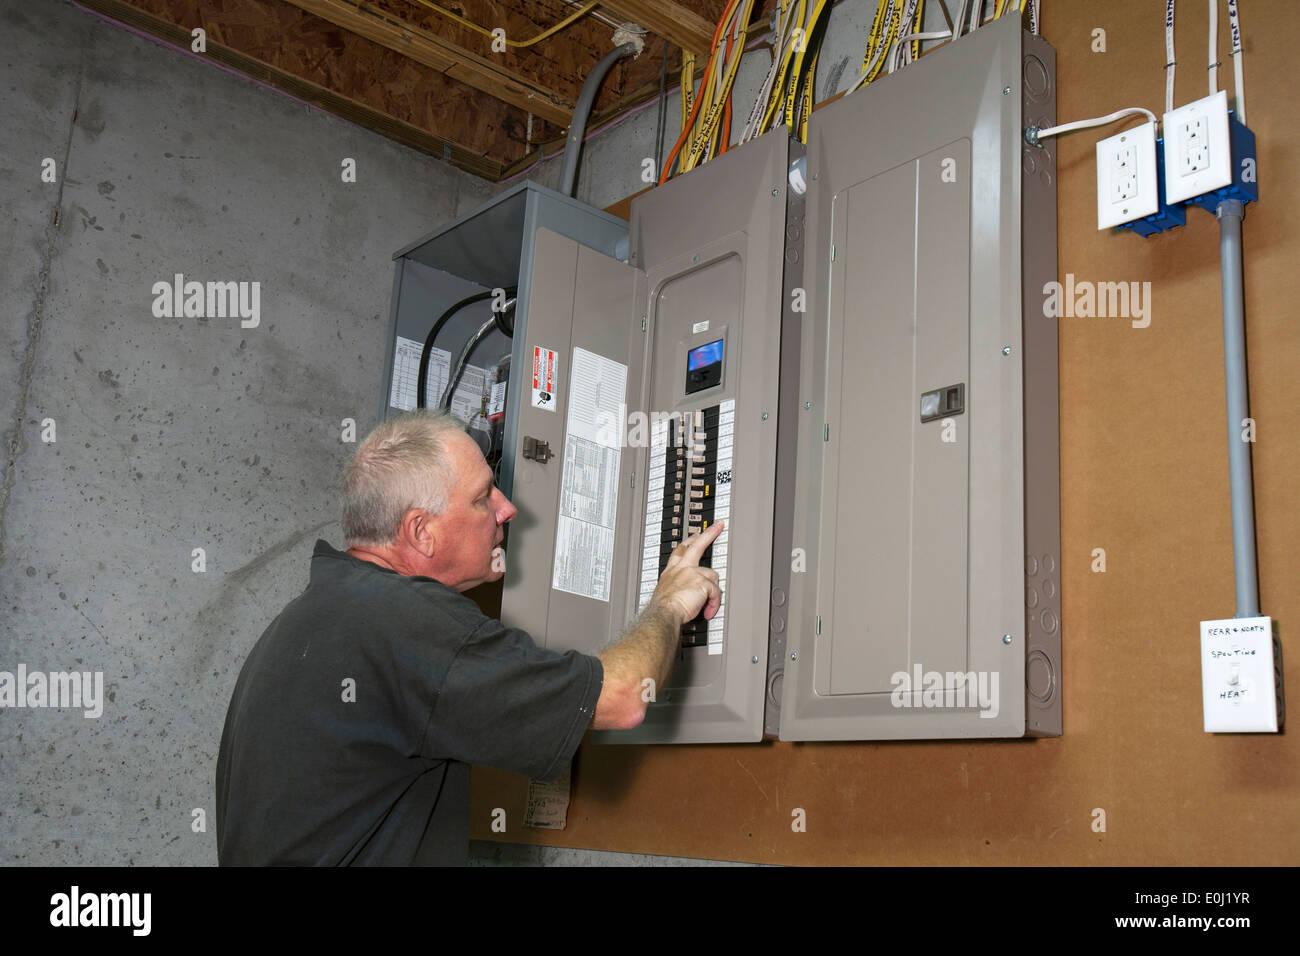 man standing next to fuse box in a basement stock photo ... fuse box in basement fuse box basement ideas